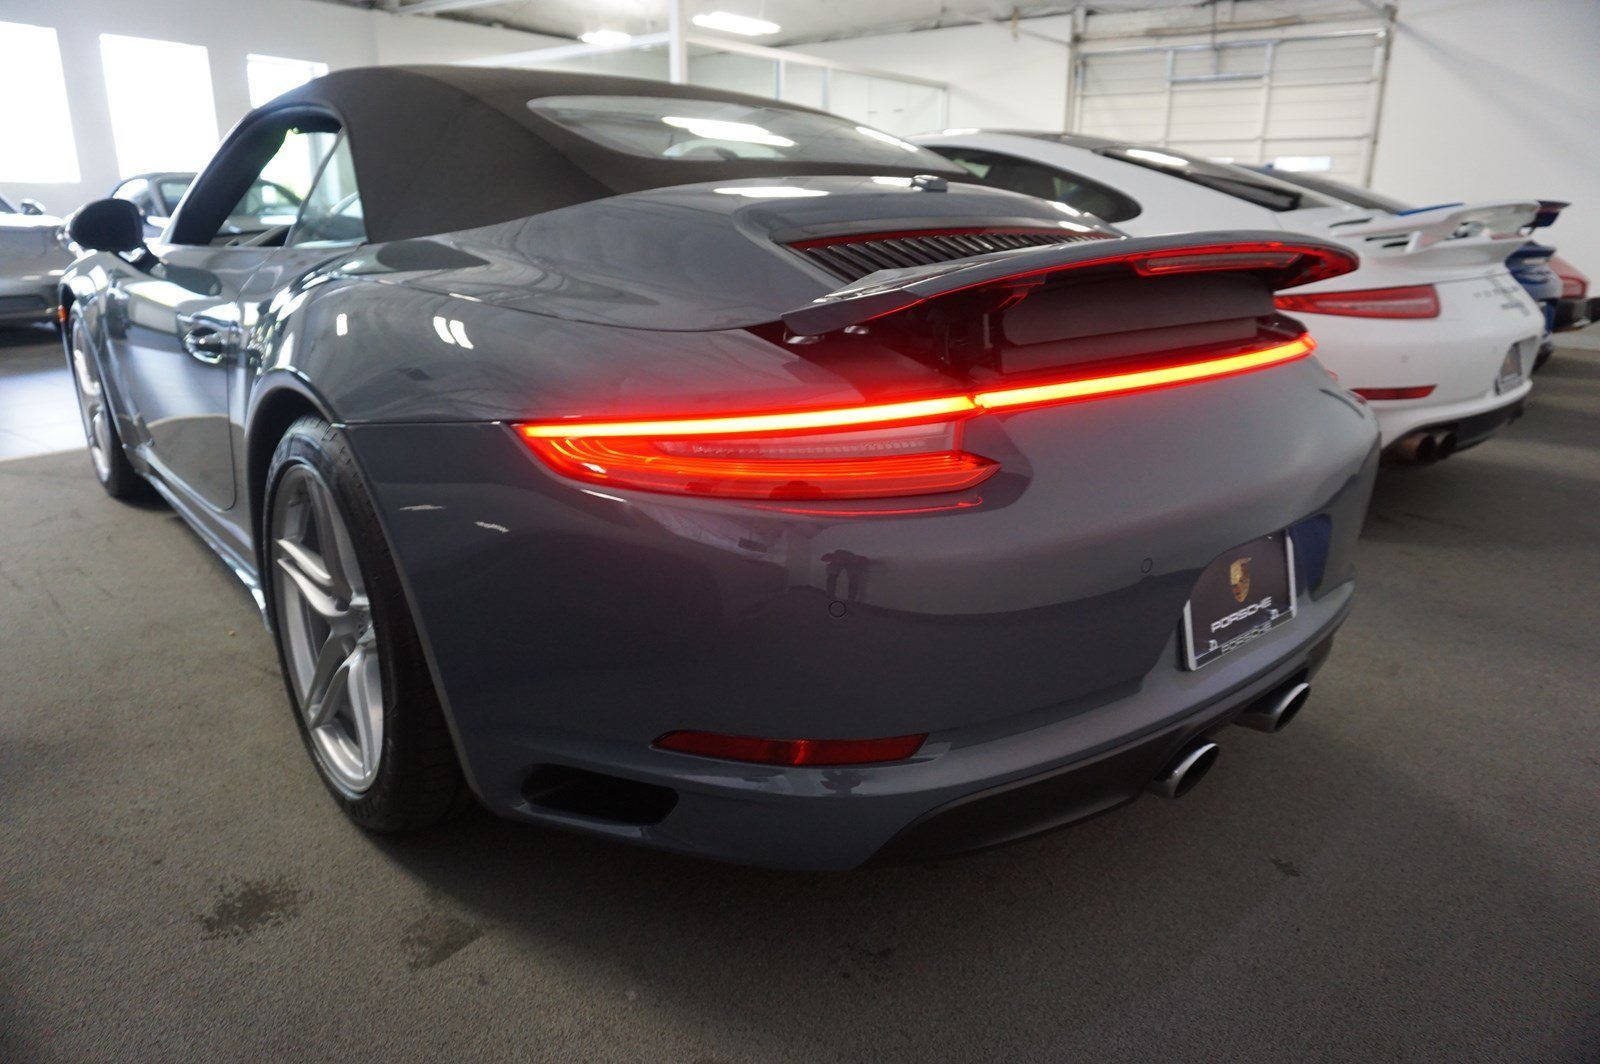 Certified Pre-Owned 2017 Porsche 911 Carrera 4 Cabriolet